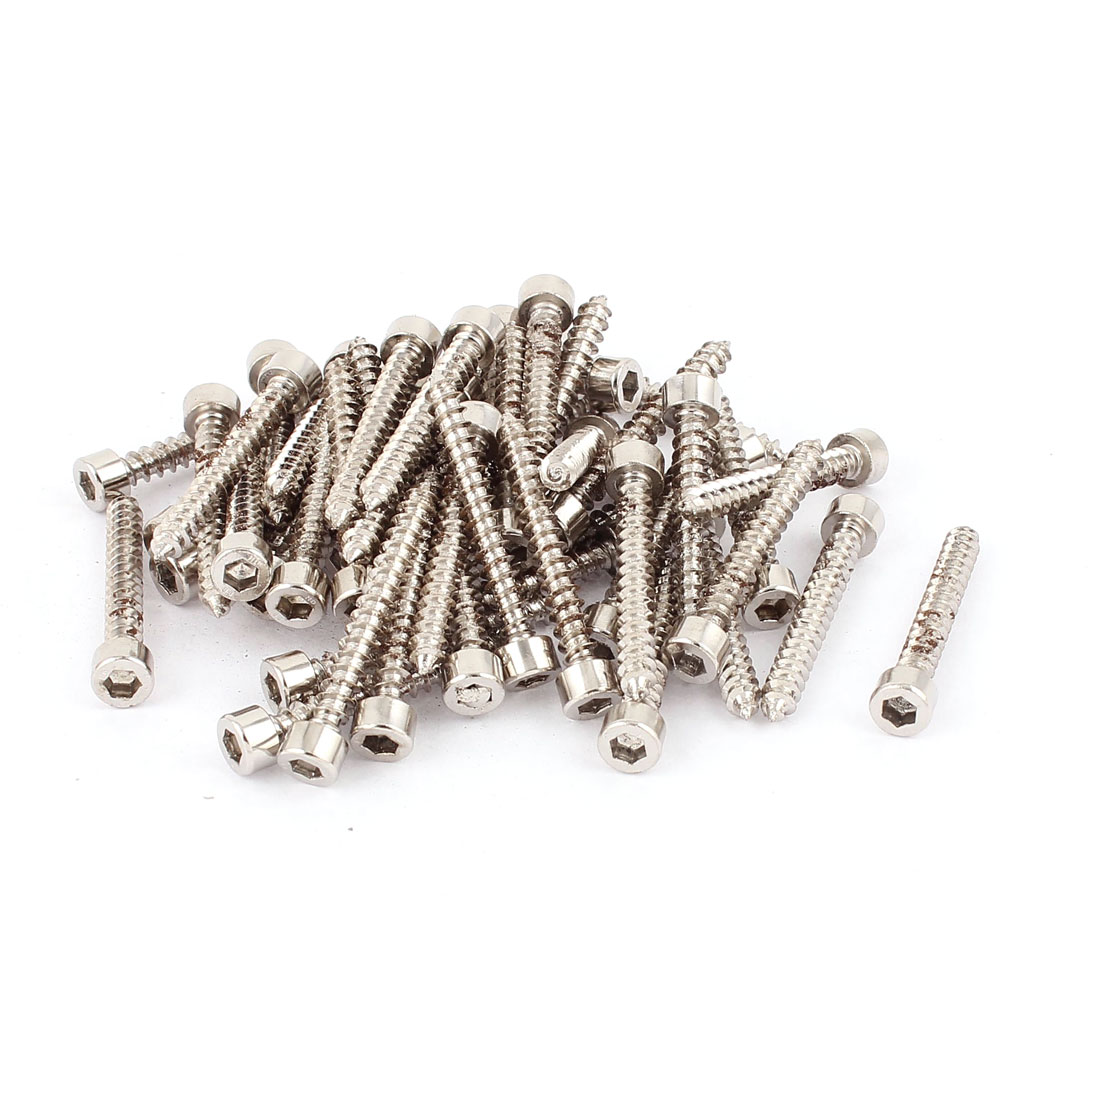 5mm x 40mm Threaded 2.0mm Pitch Nickel Plated Hex Head Self Tapping Screws 50pcs